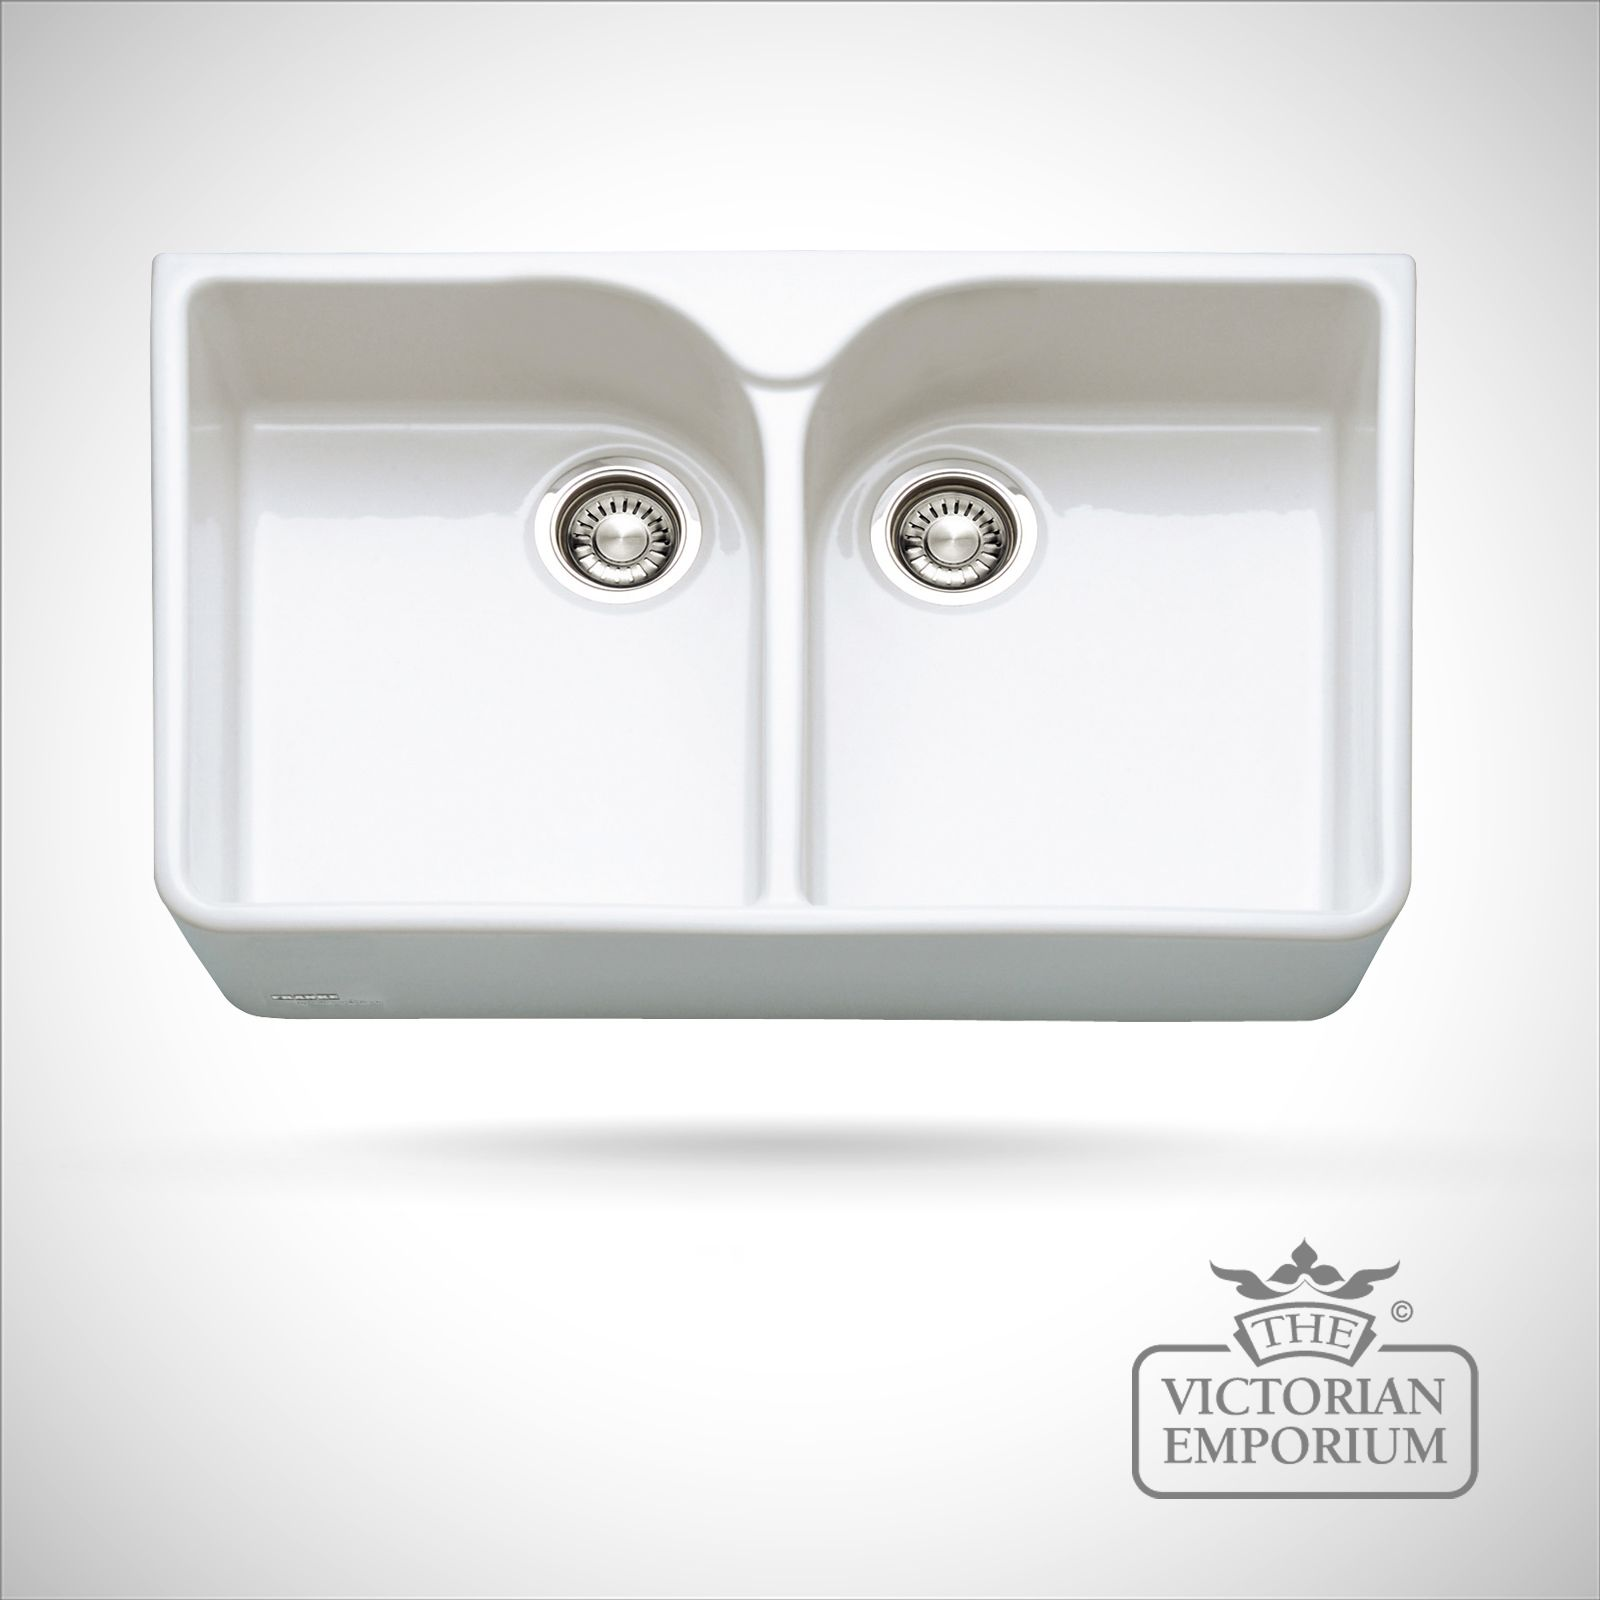 Double Belfast sink | Kitchen sinks | The Victorian Emporium